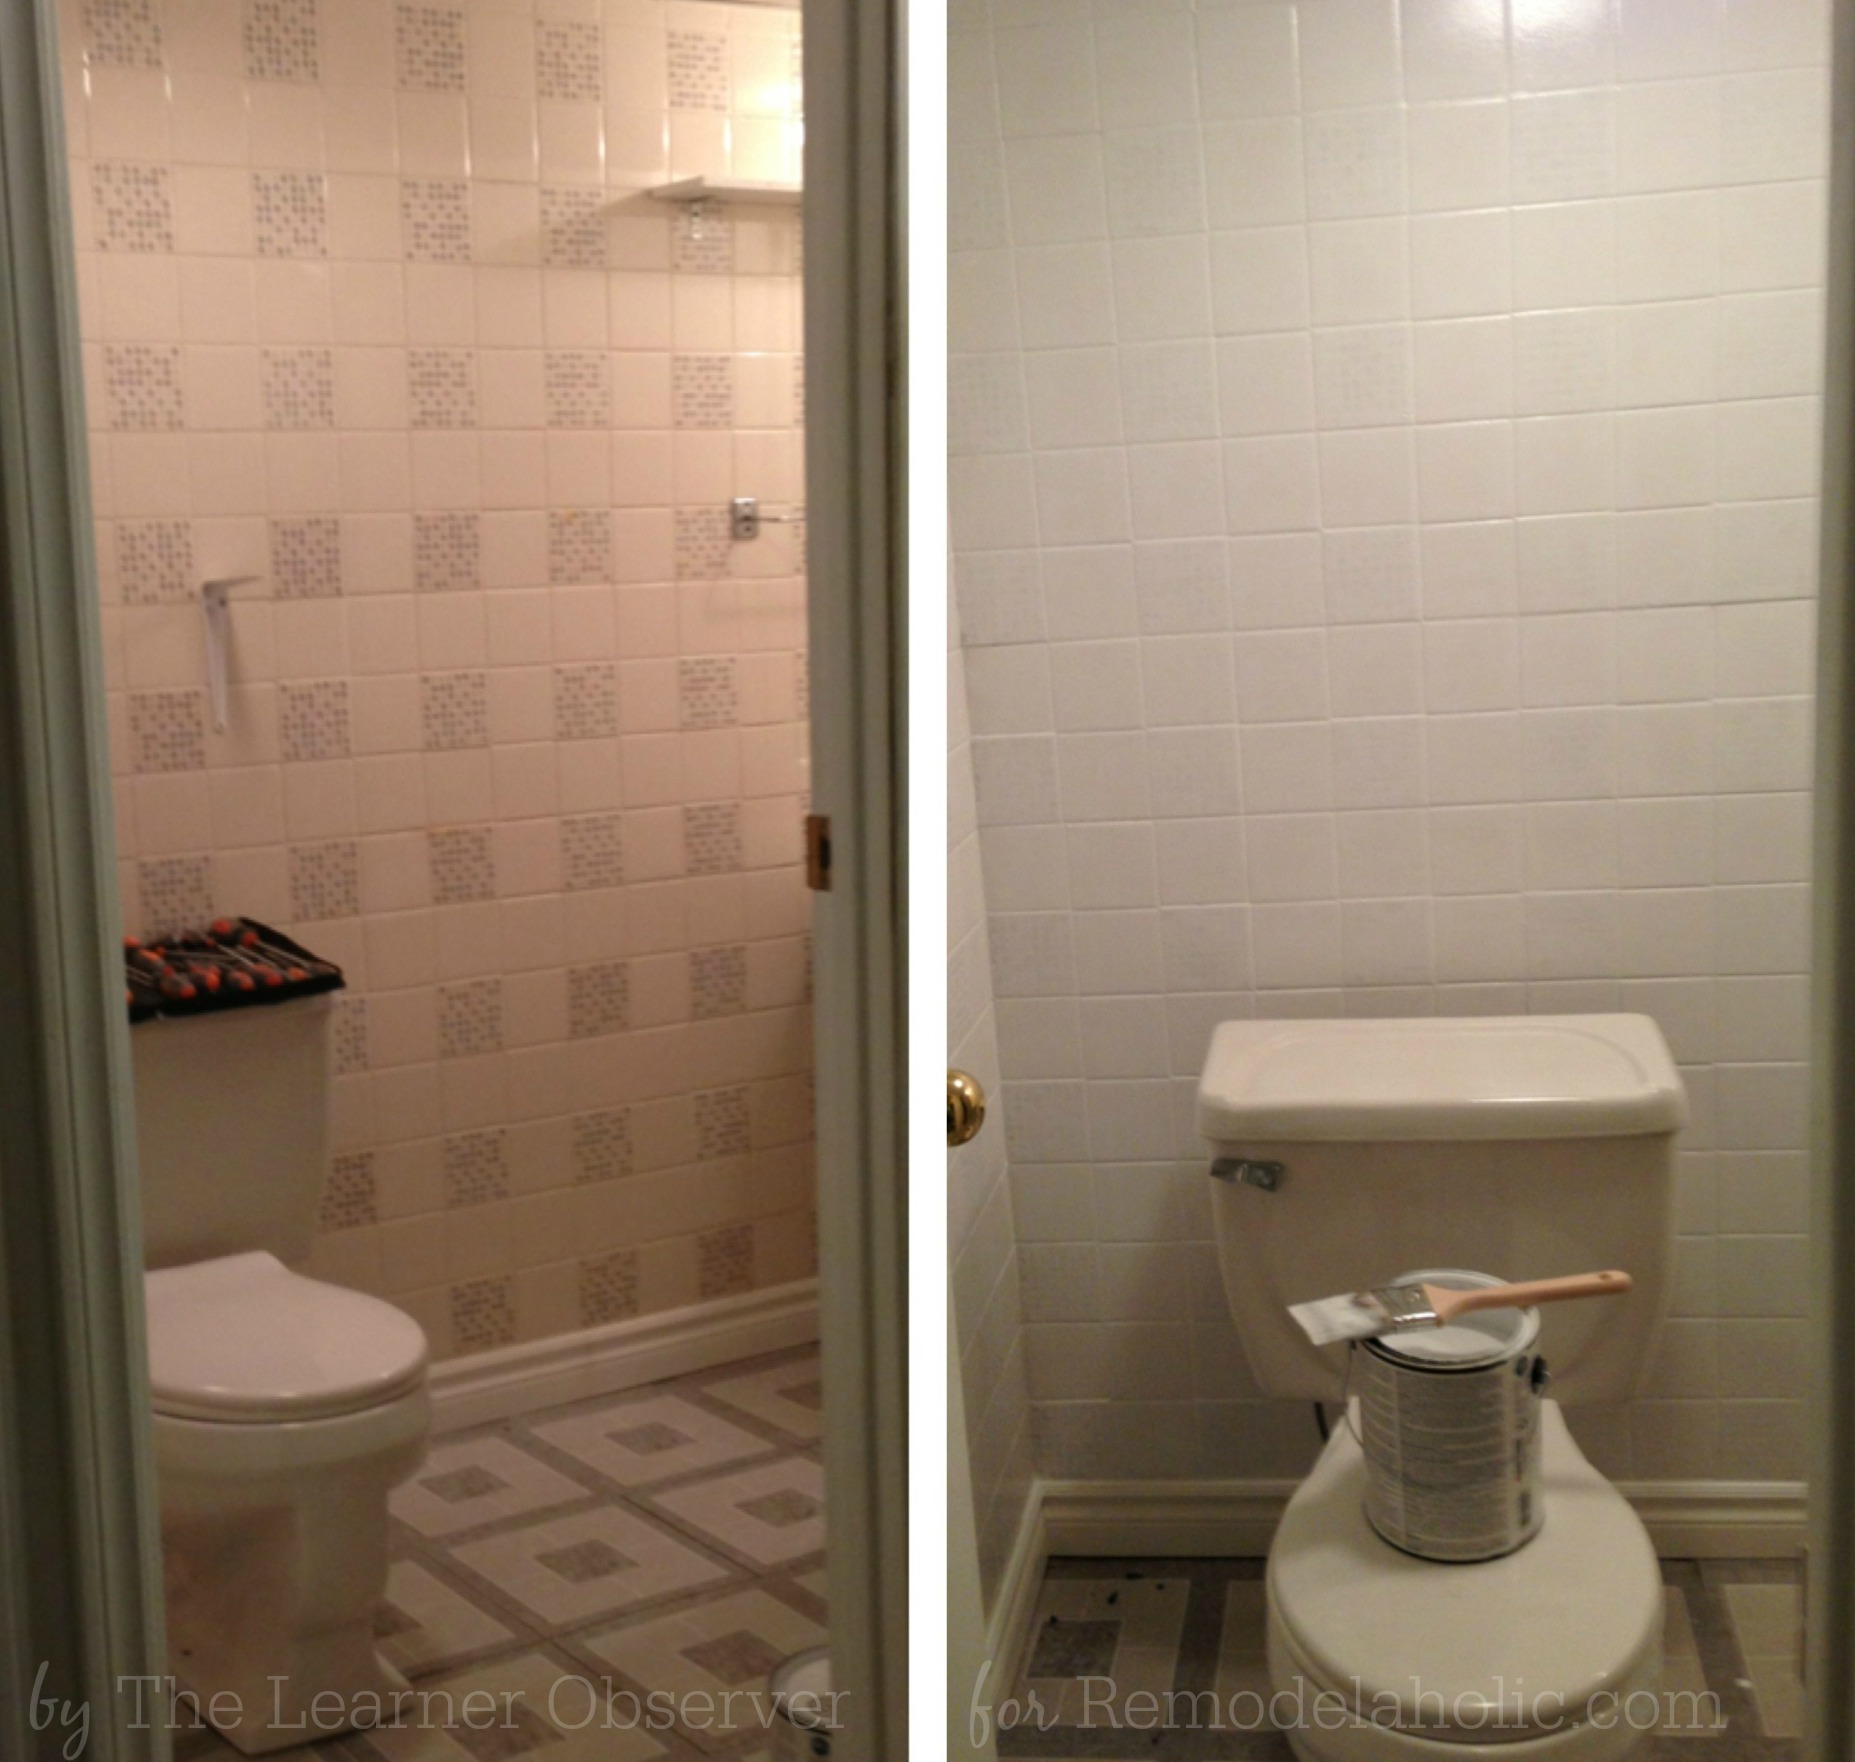 Remodelaholic a 170 bathroom makeover with painted tile how to paint tile by the learner observer on remodelaholic dailygadgetfo Choice Image